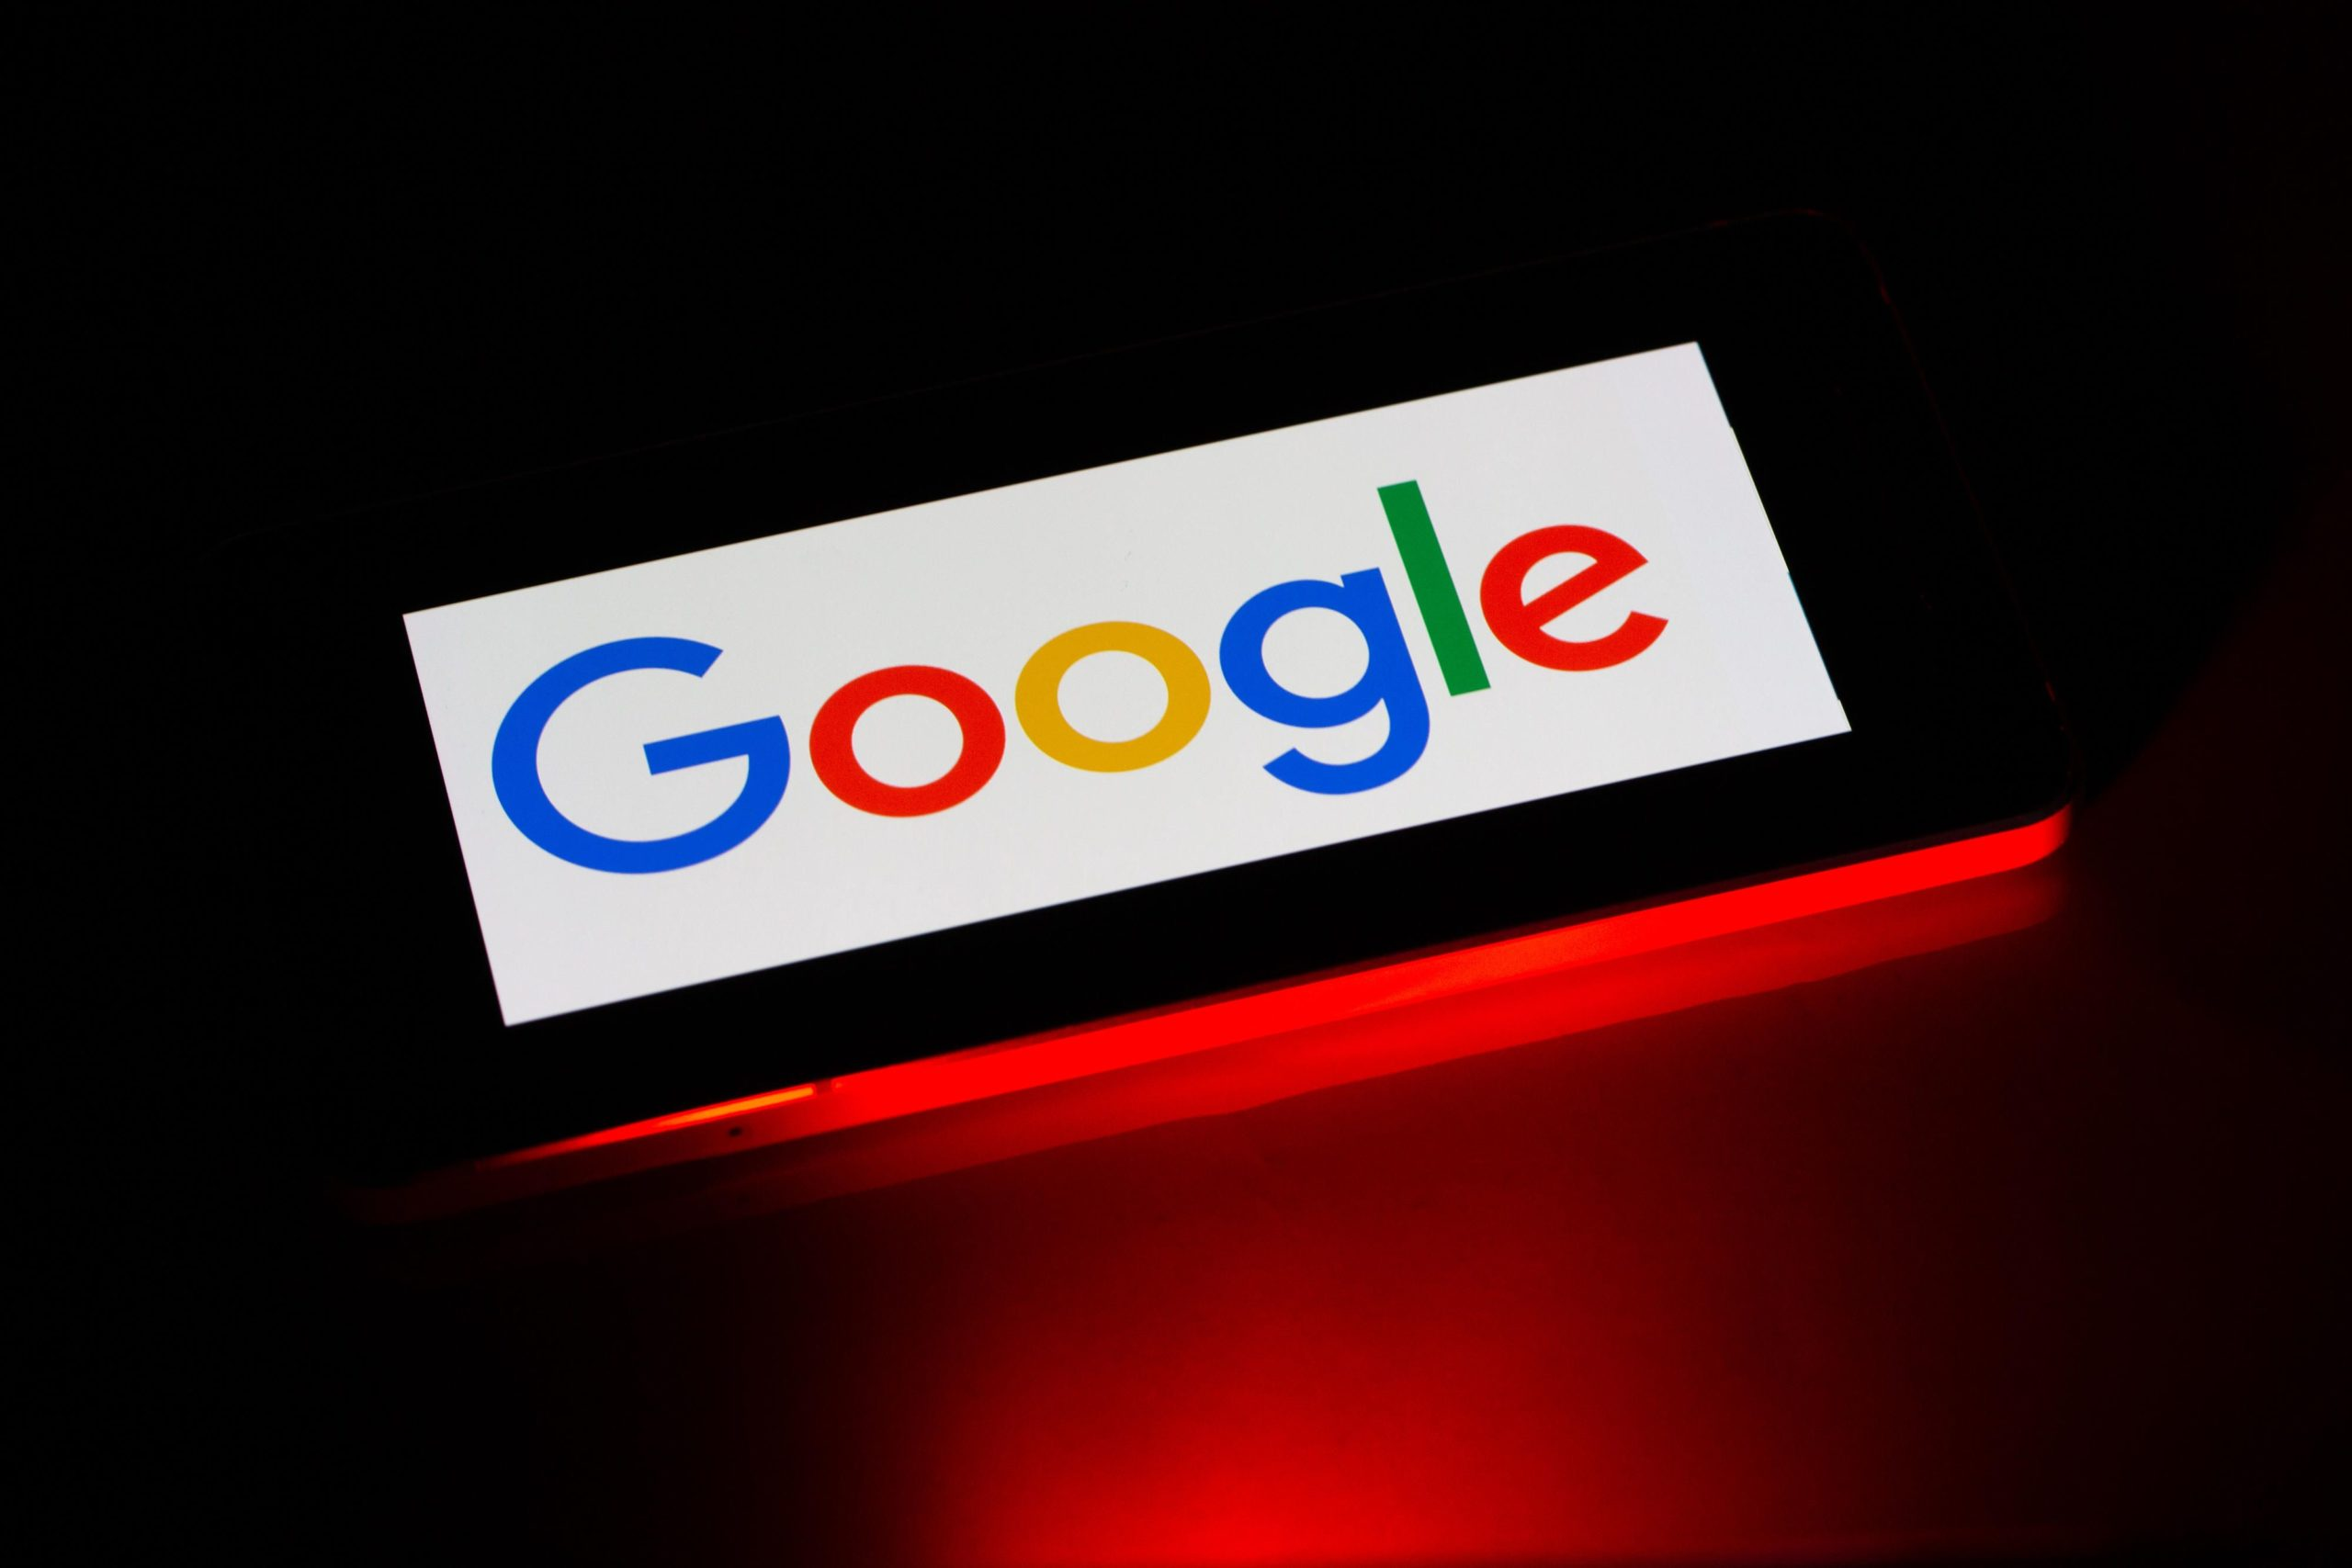 Google reportedly under antitrust investigation in California